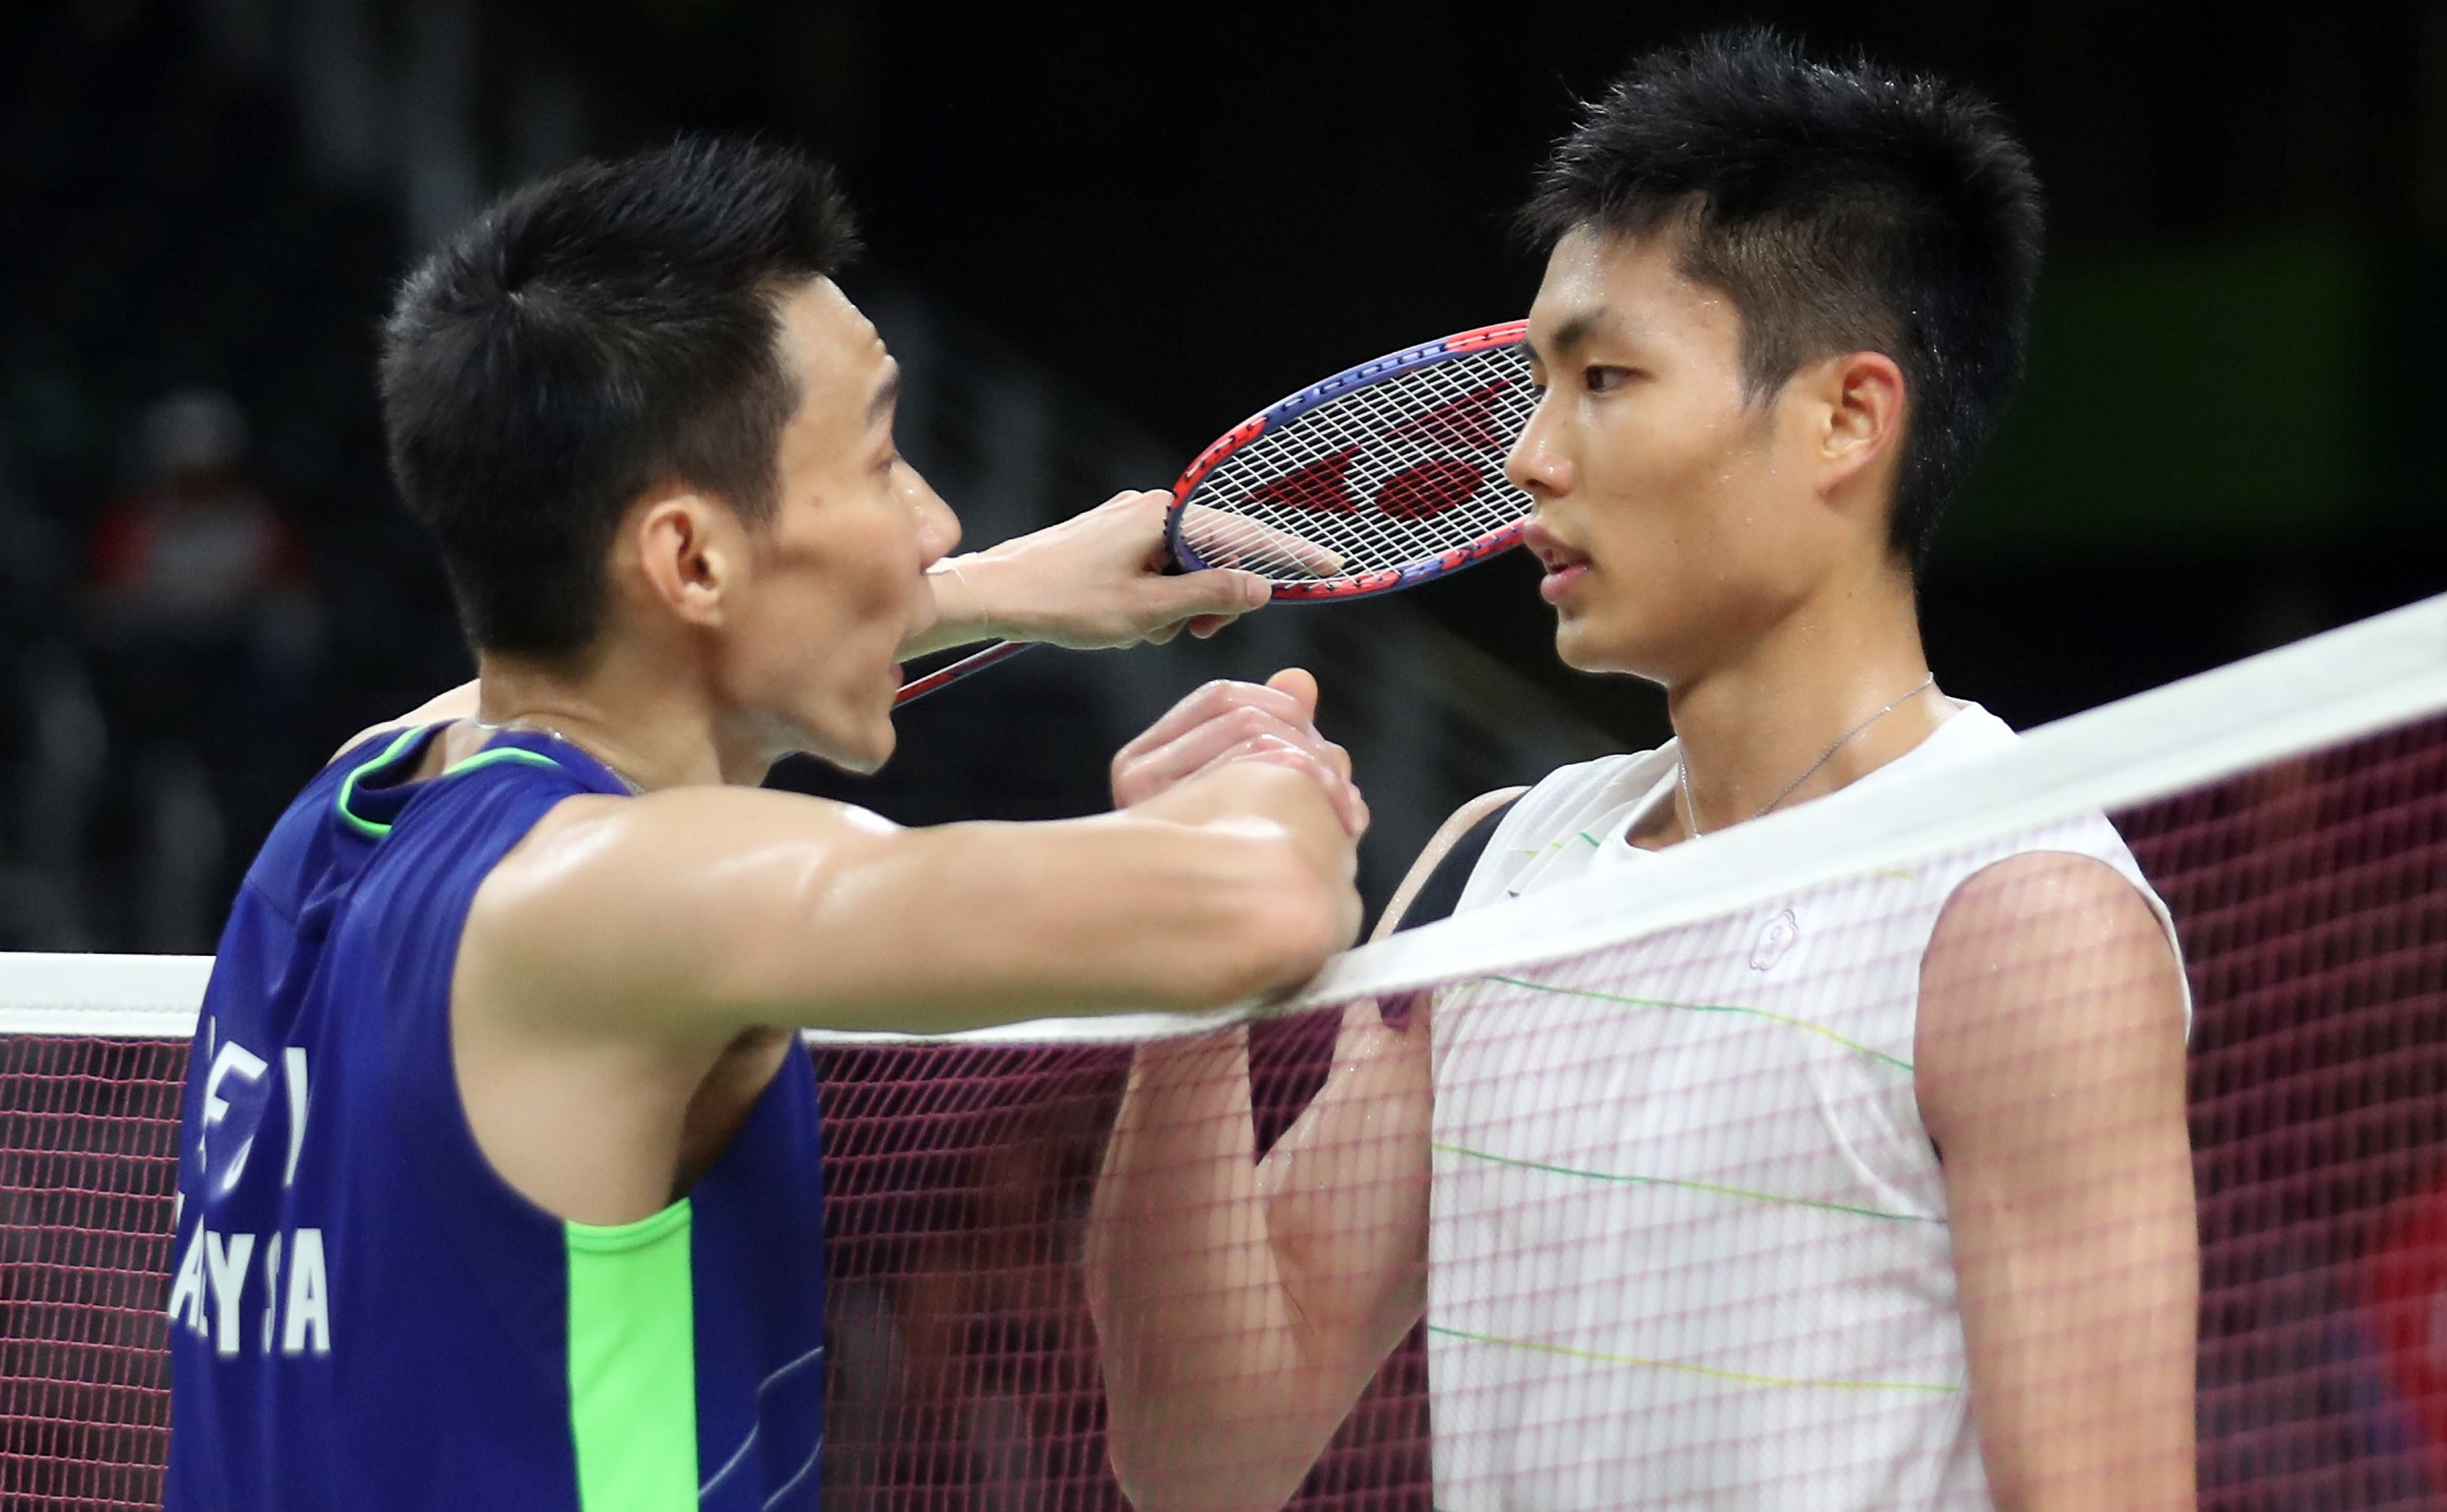 Day 7 - Lee Chong Wei & Chou Tien Chen